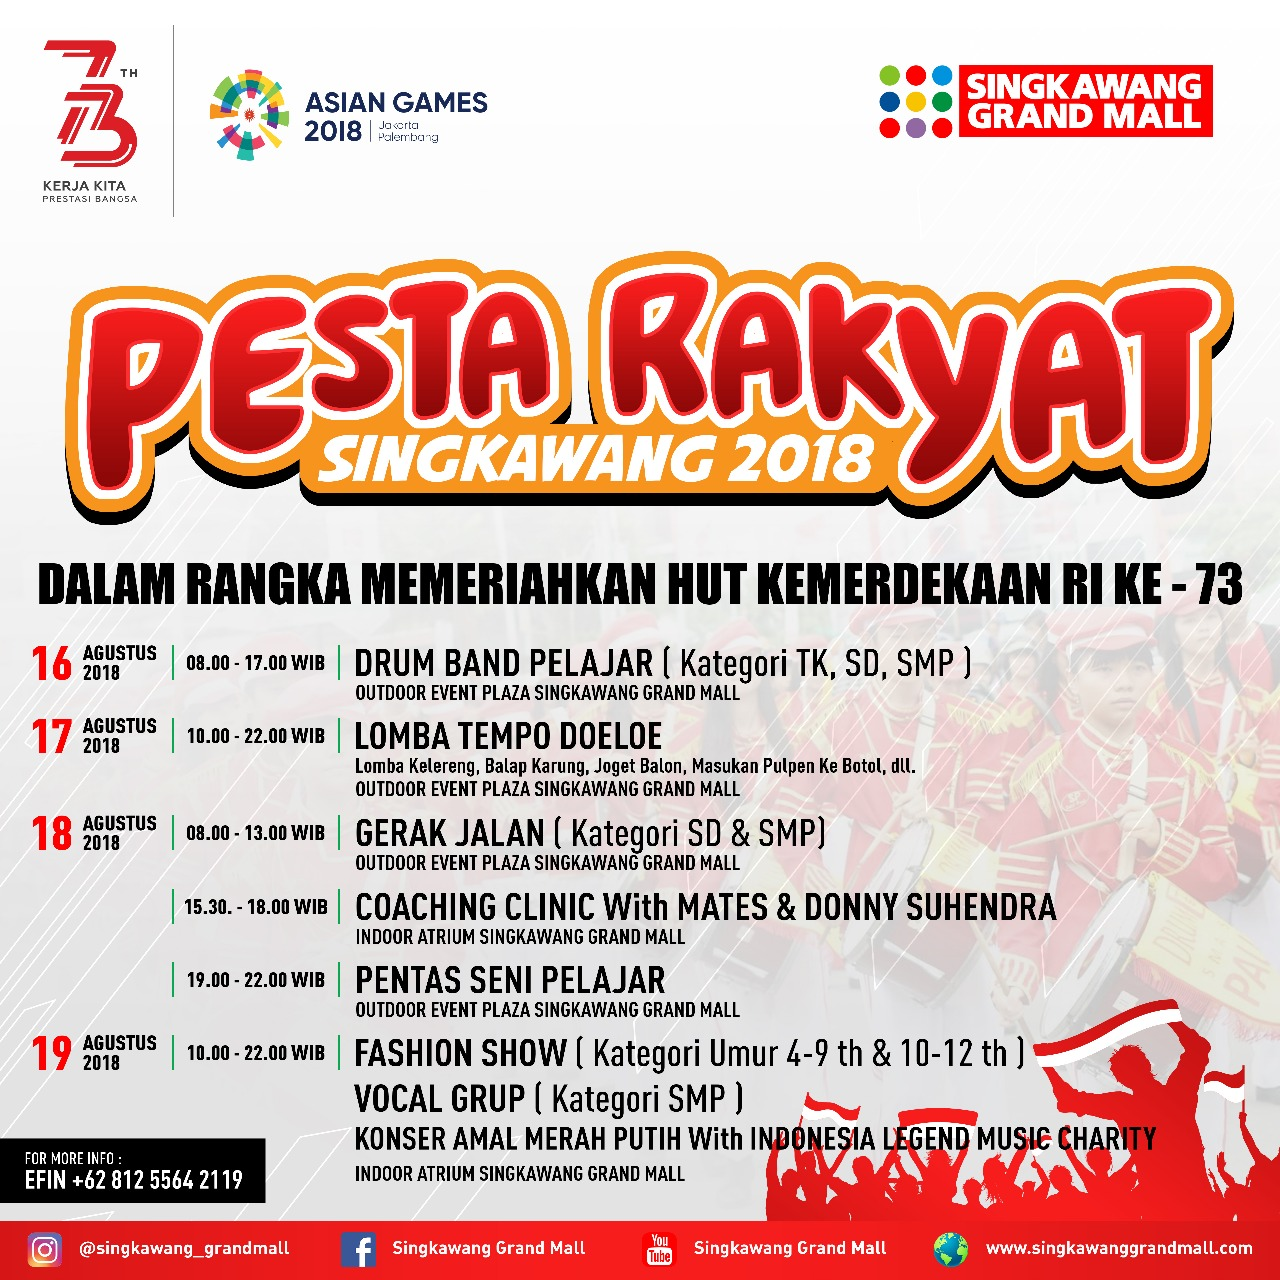 Pesta Rakyat Singkawang Grand Mall